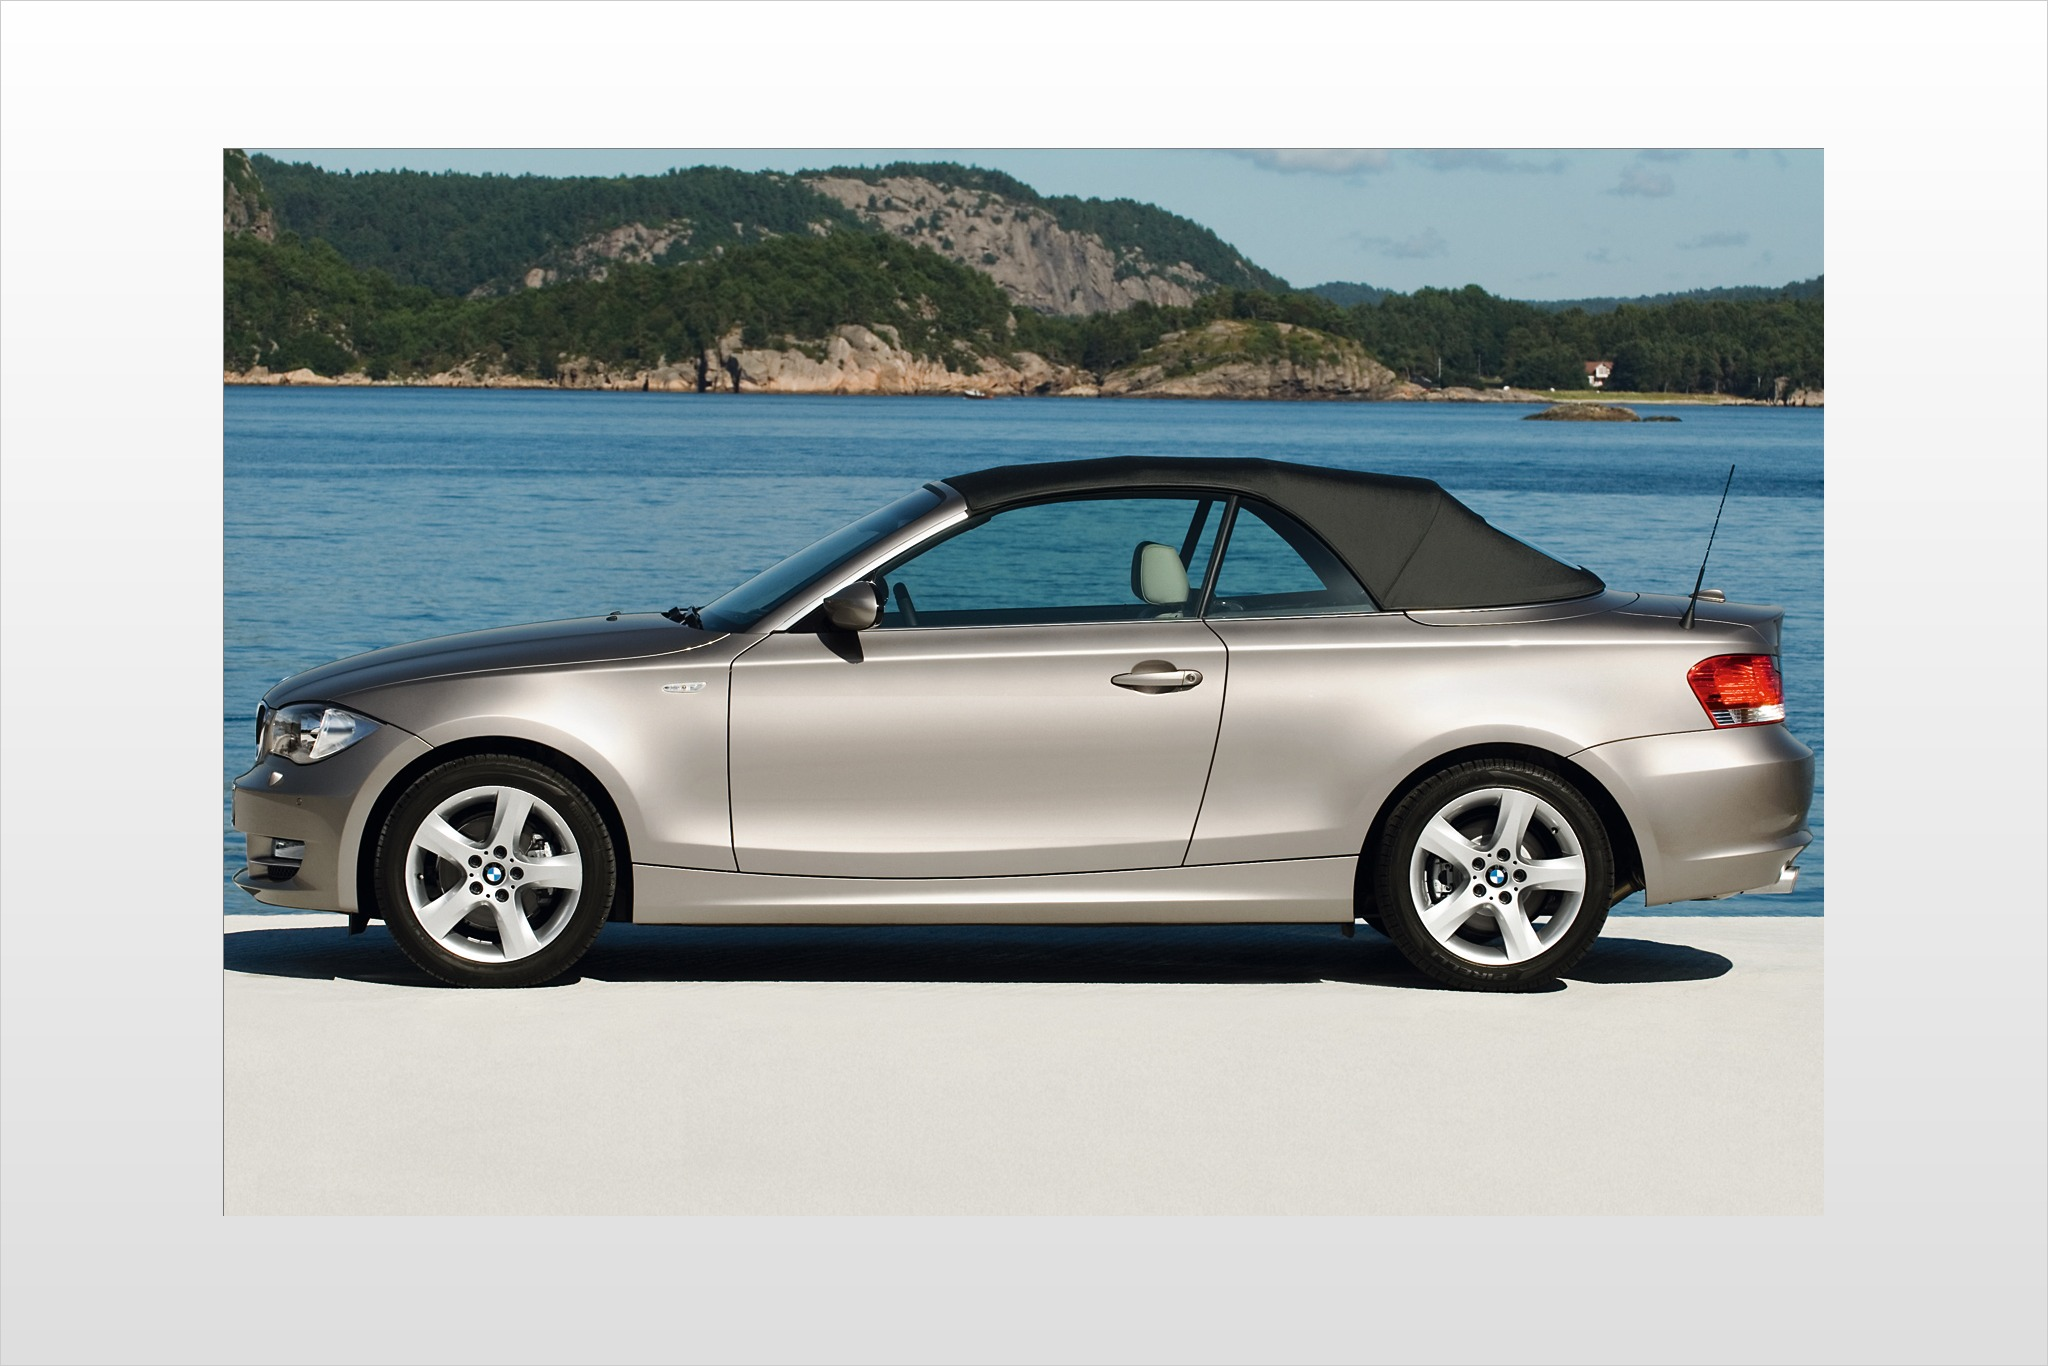 Bmw 128I Convertible >> 2008 BMW 1 SERIES - Image #7